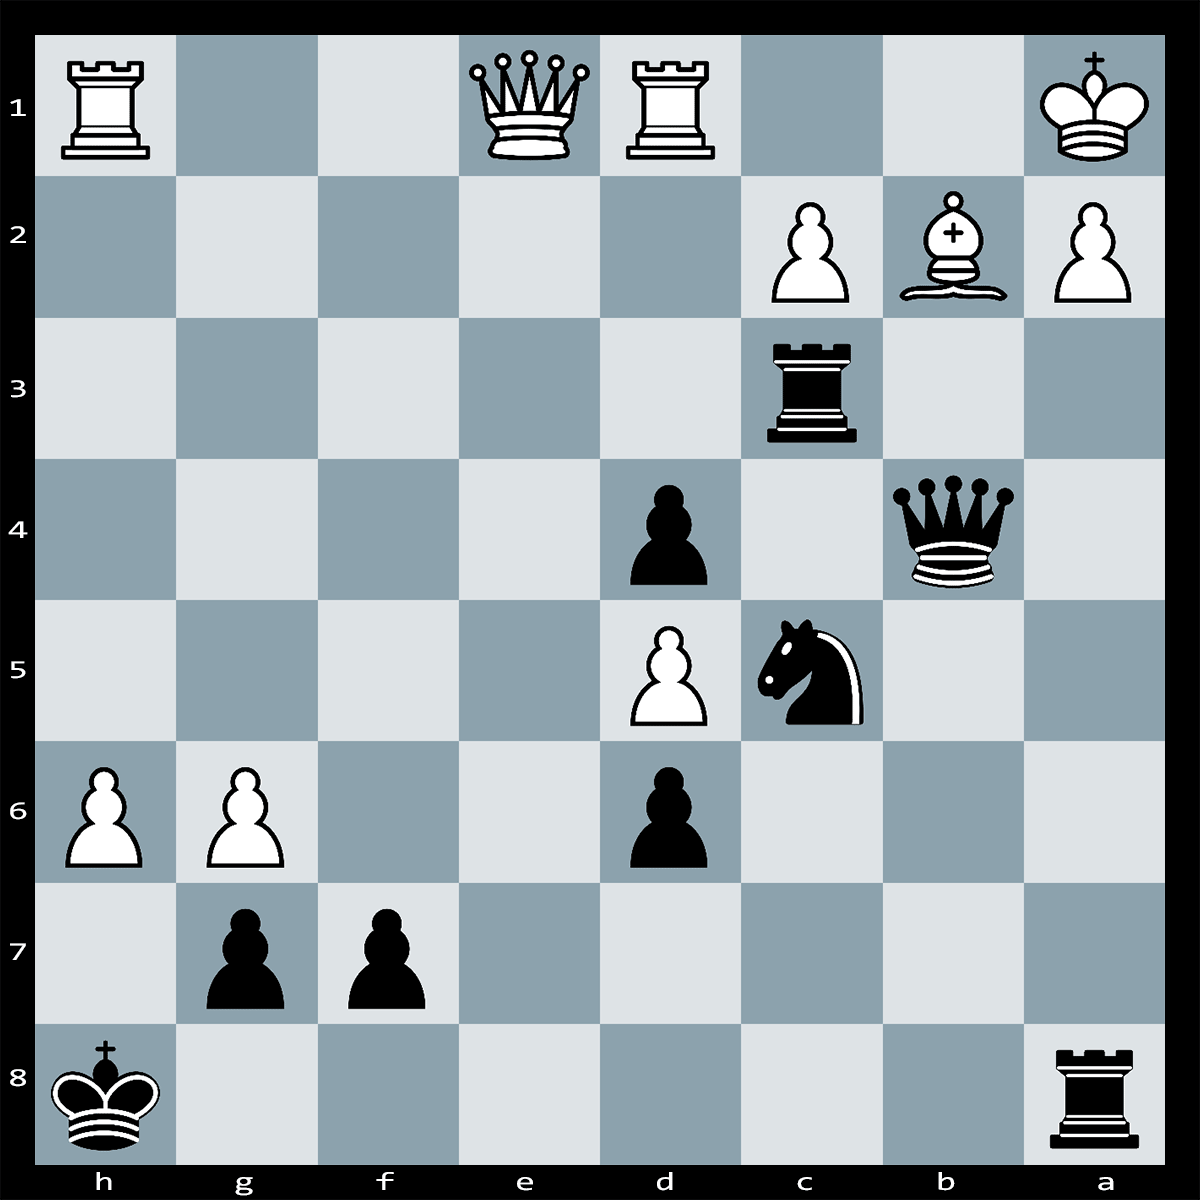 Black to move! It's mate in five | Chess Puzzle #205